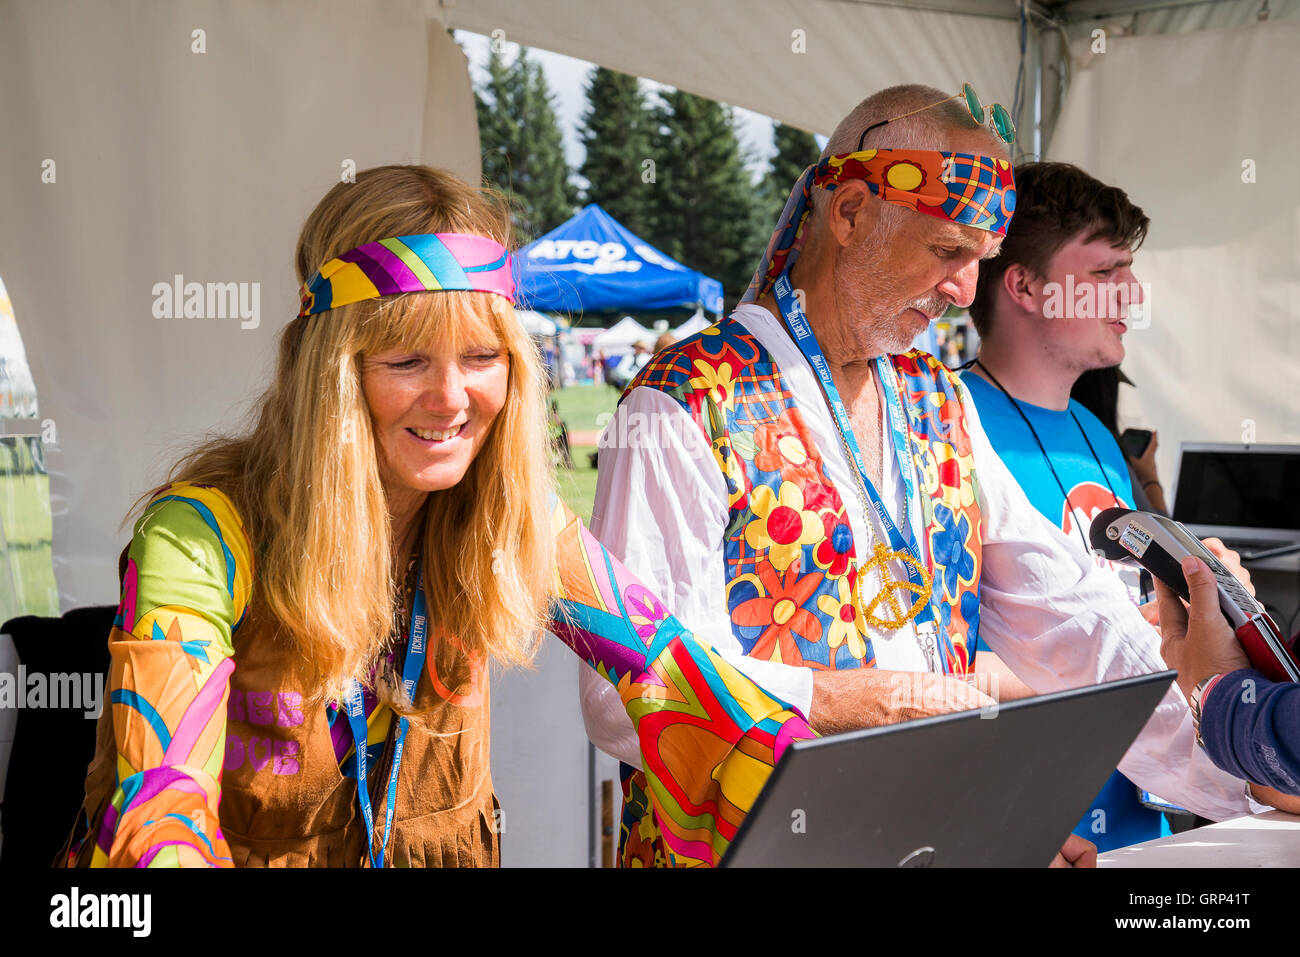 Music event ticket sellers dressed as hippies. - Stock Image